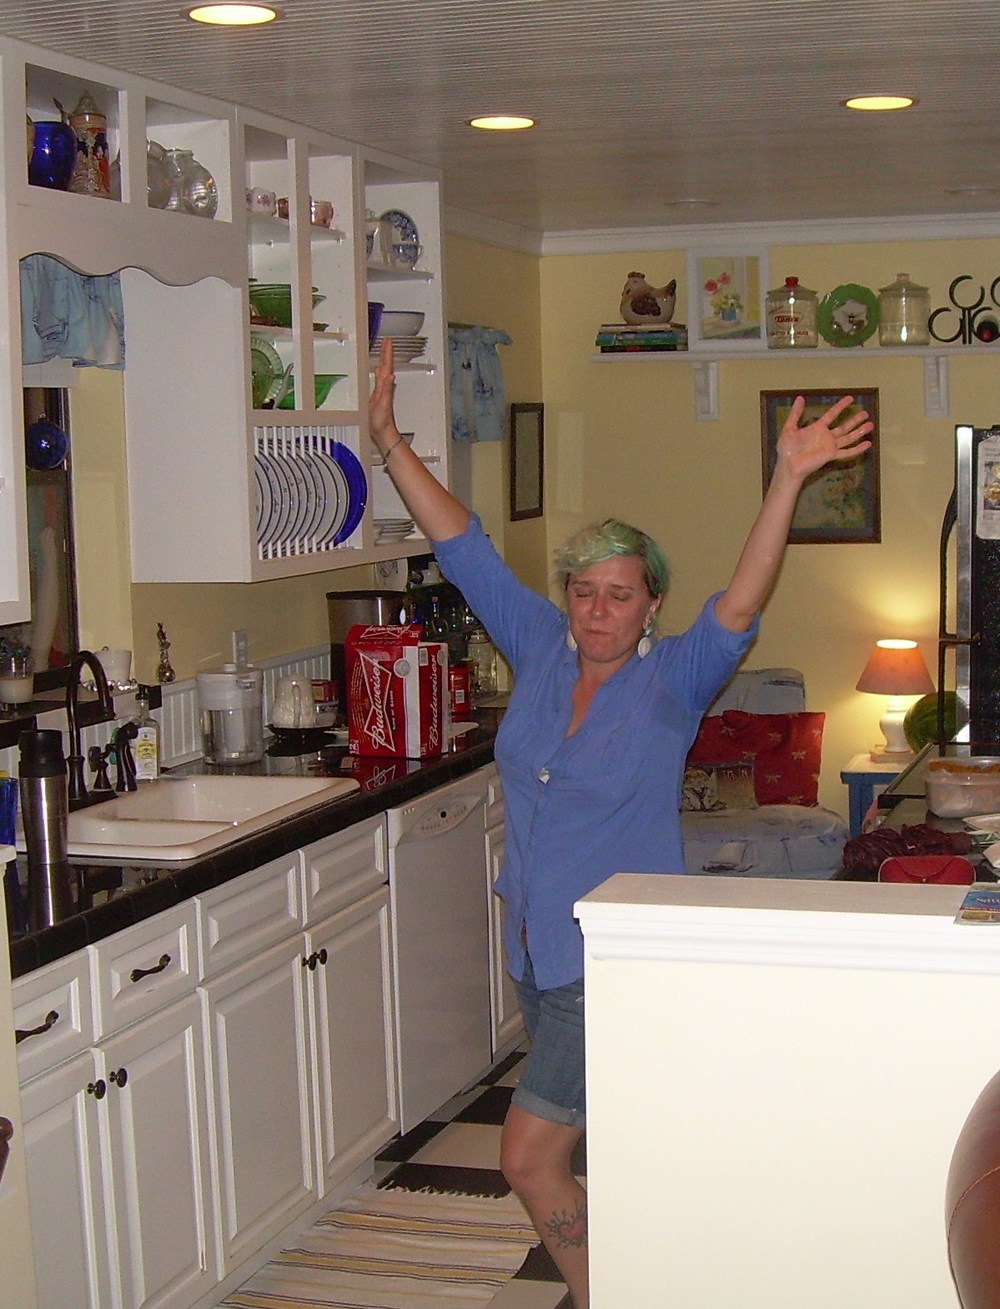 MY GIRL dancing in the kitchen.